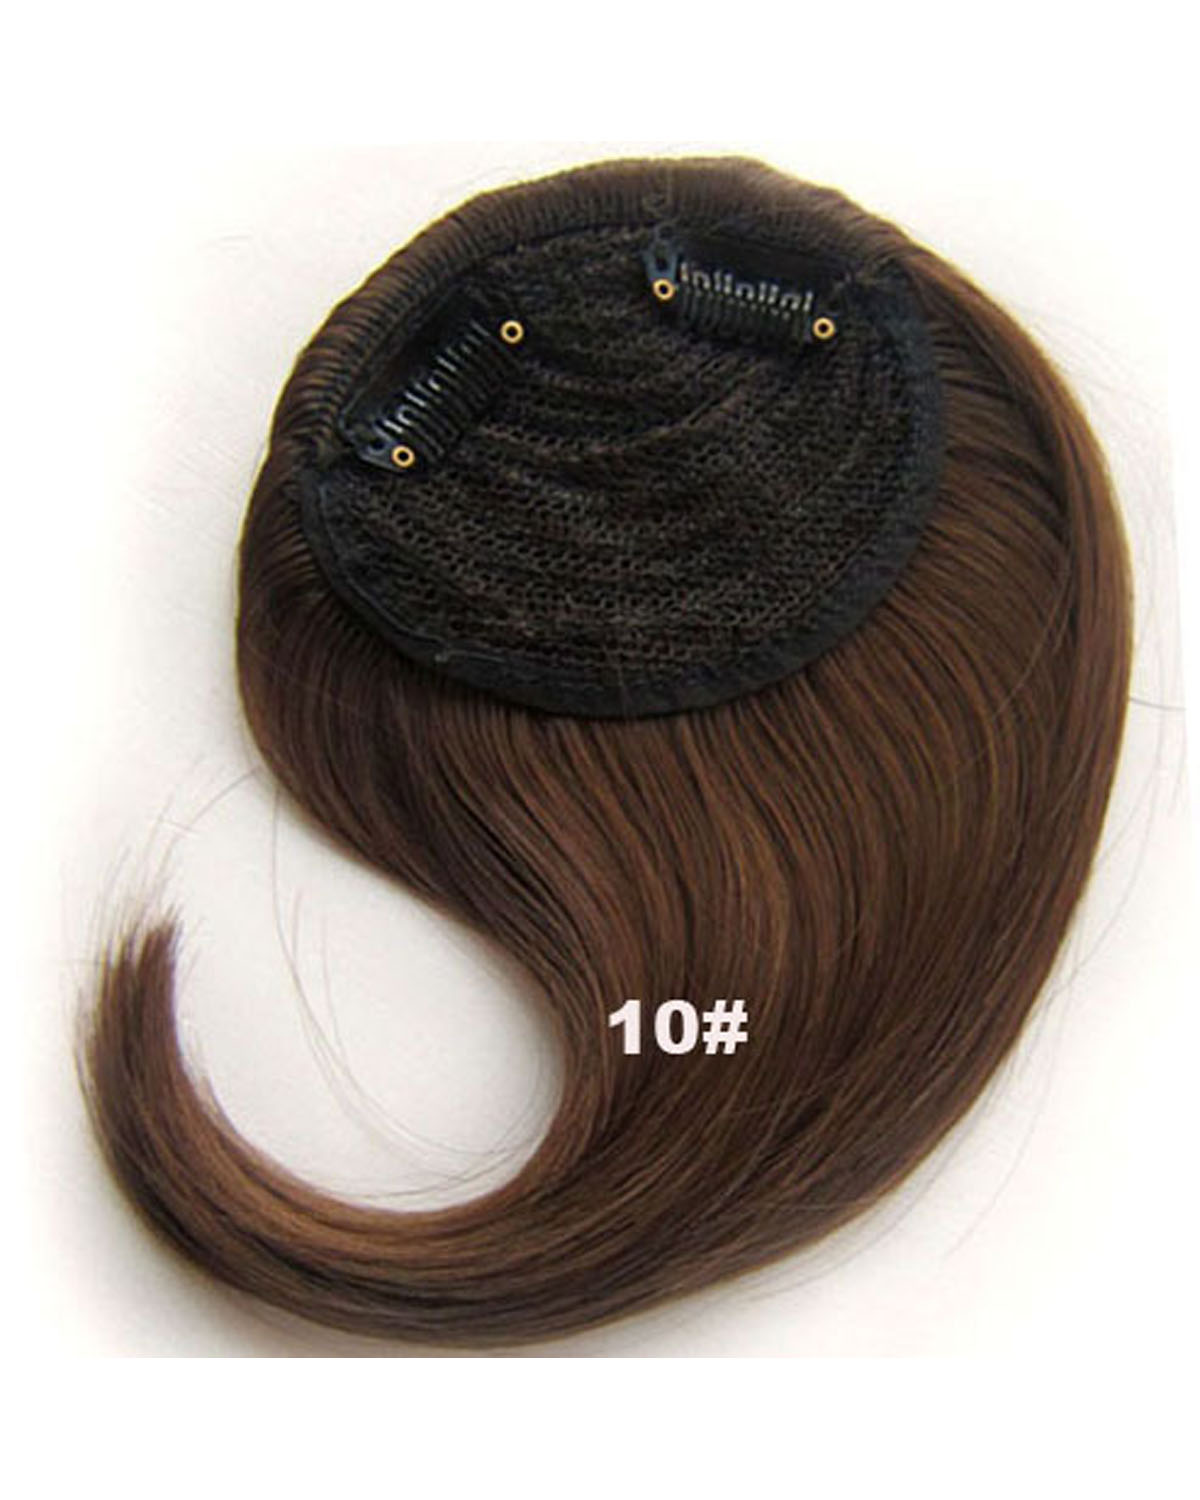 Girls Charming Straight Short Bangs Clip in Synthetic Hair Extension Fringe Bangs Hairpiece10#